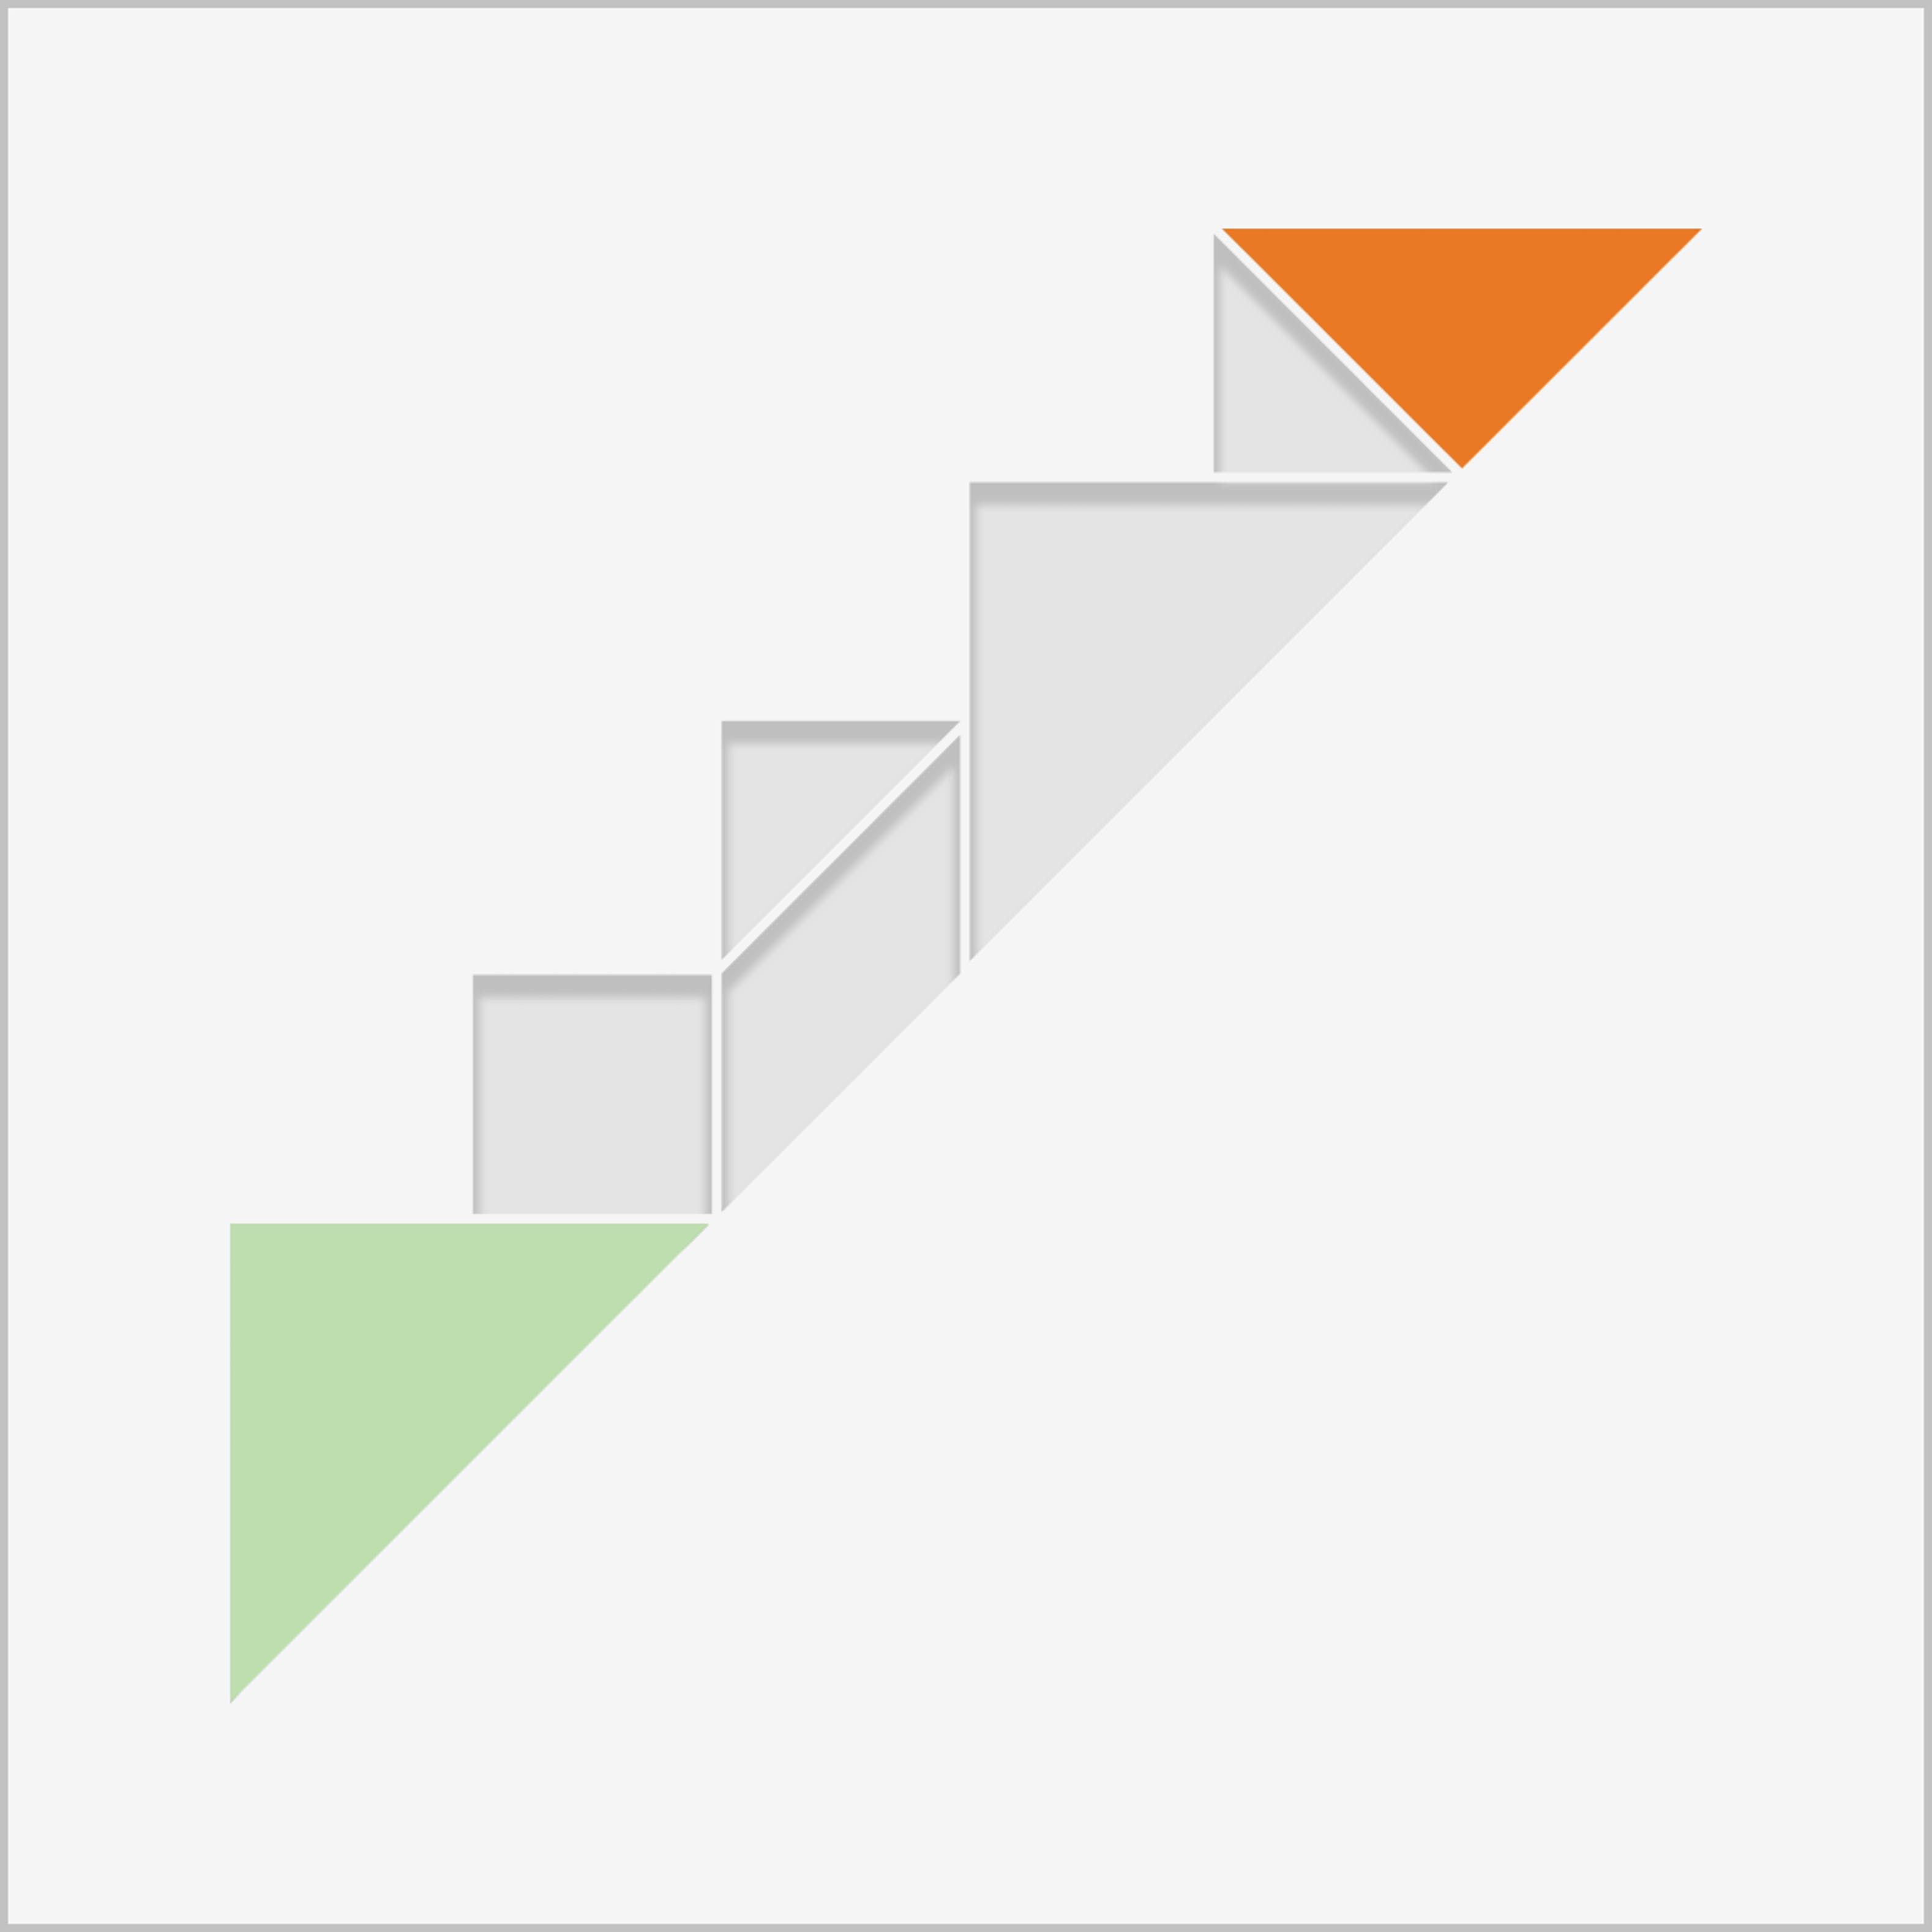 Managerial Accounting: Cost Behaviors, Systems, and Analysis | Coursera